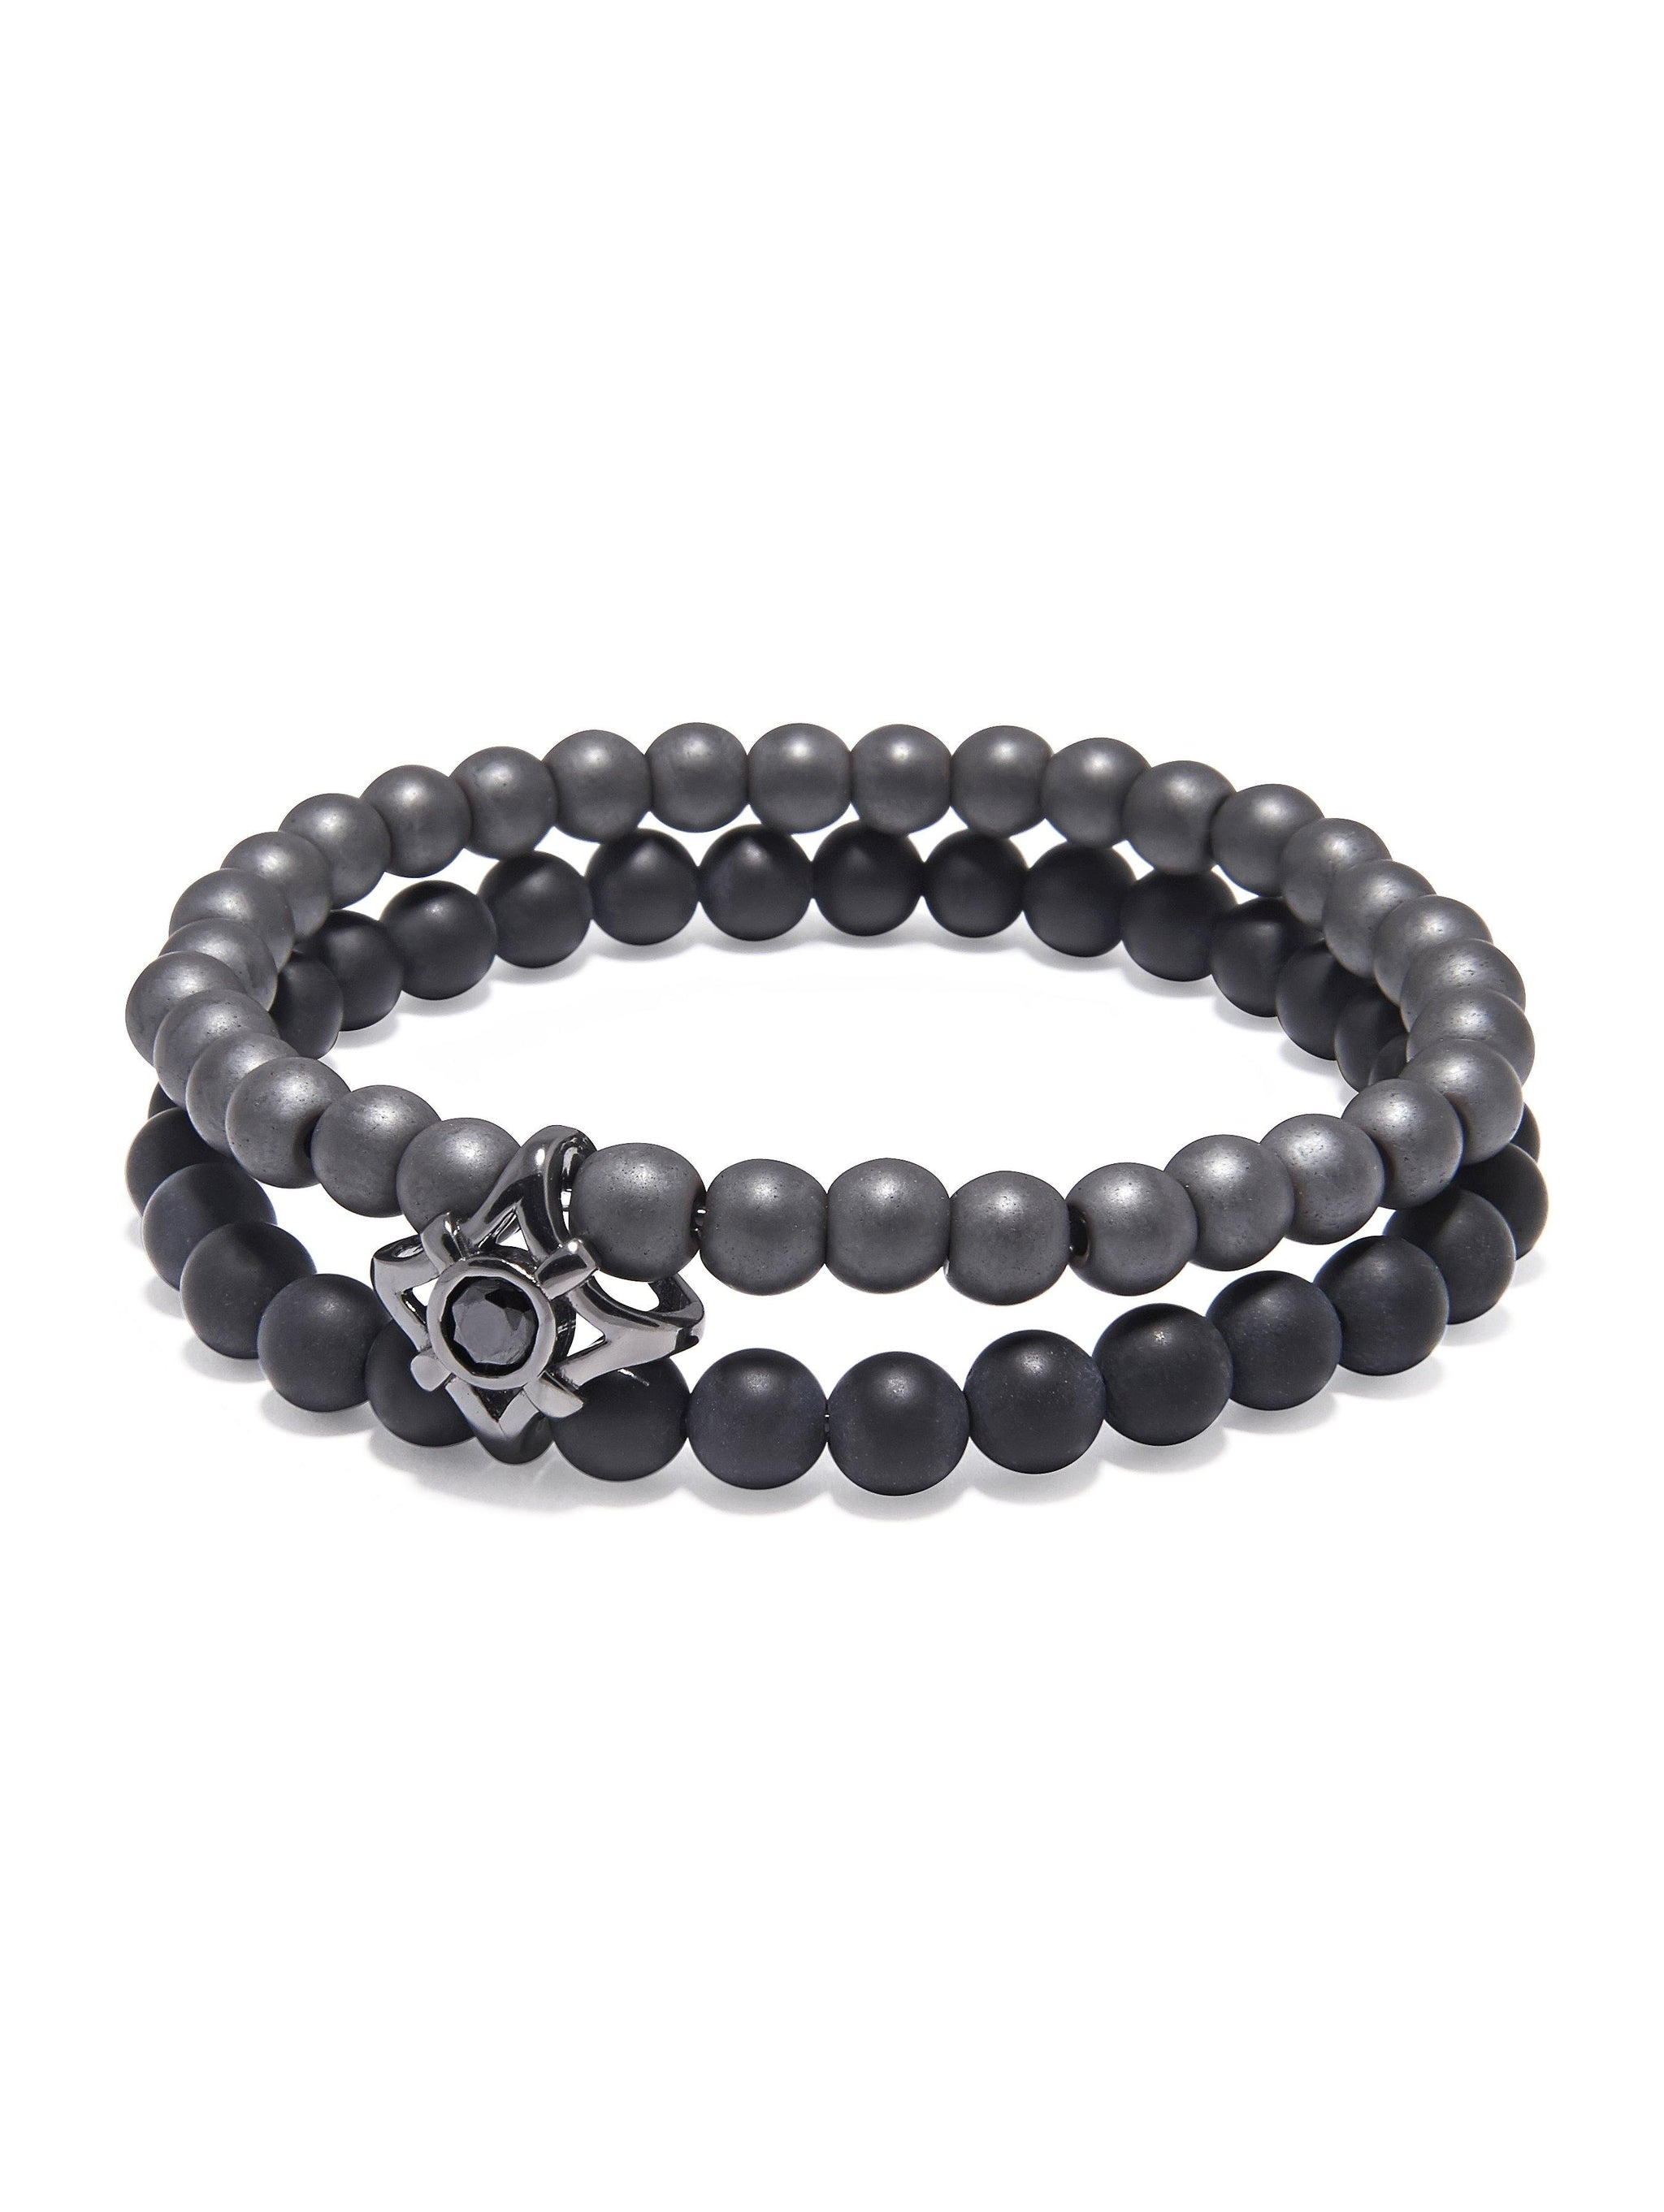 Men's Double Bead Wristband with Matte Onyx and Agate - Nialaya Jewelry